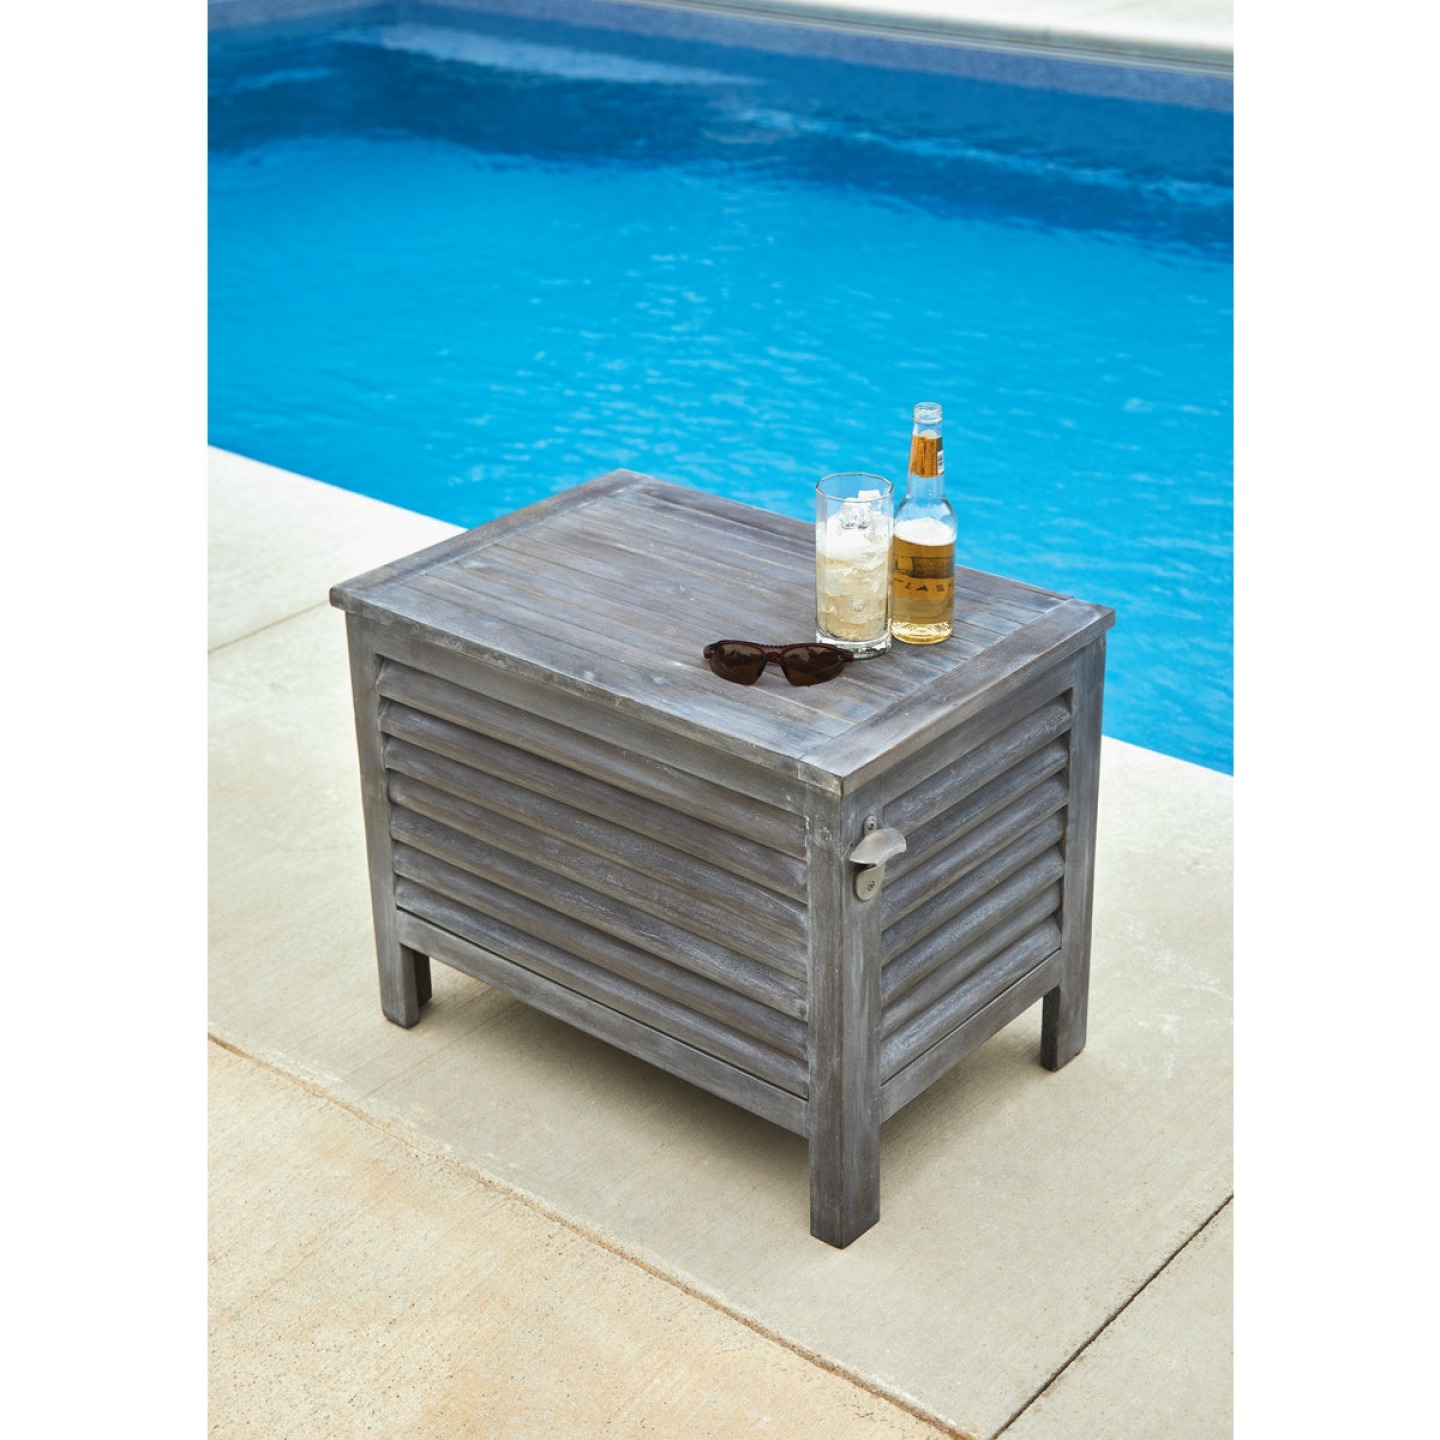 Leigh Country 56 Qt. Acacia Wood Cooler, Gray Image 5